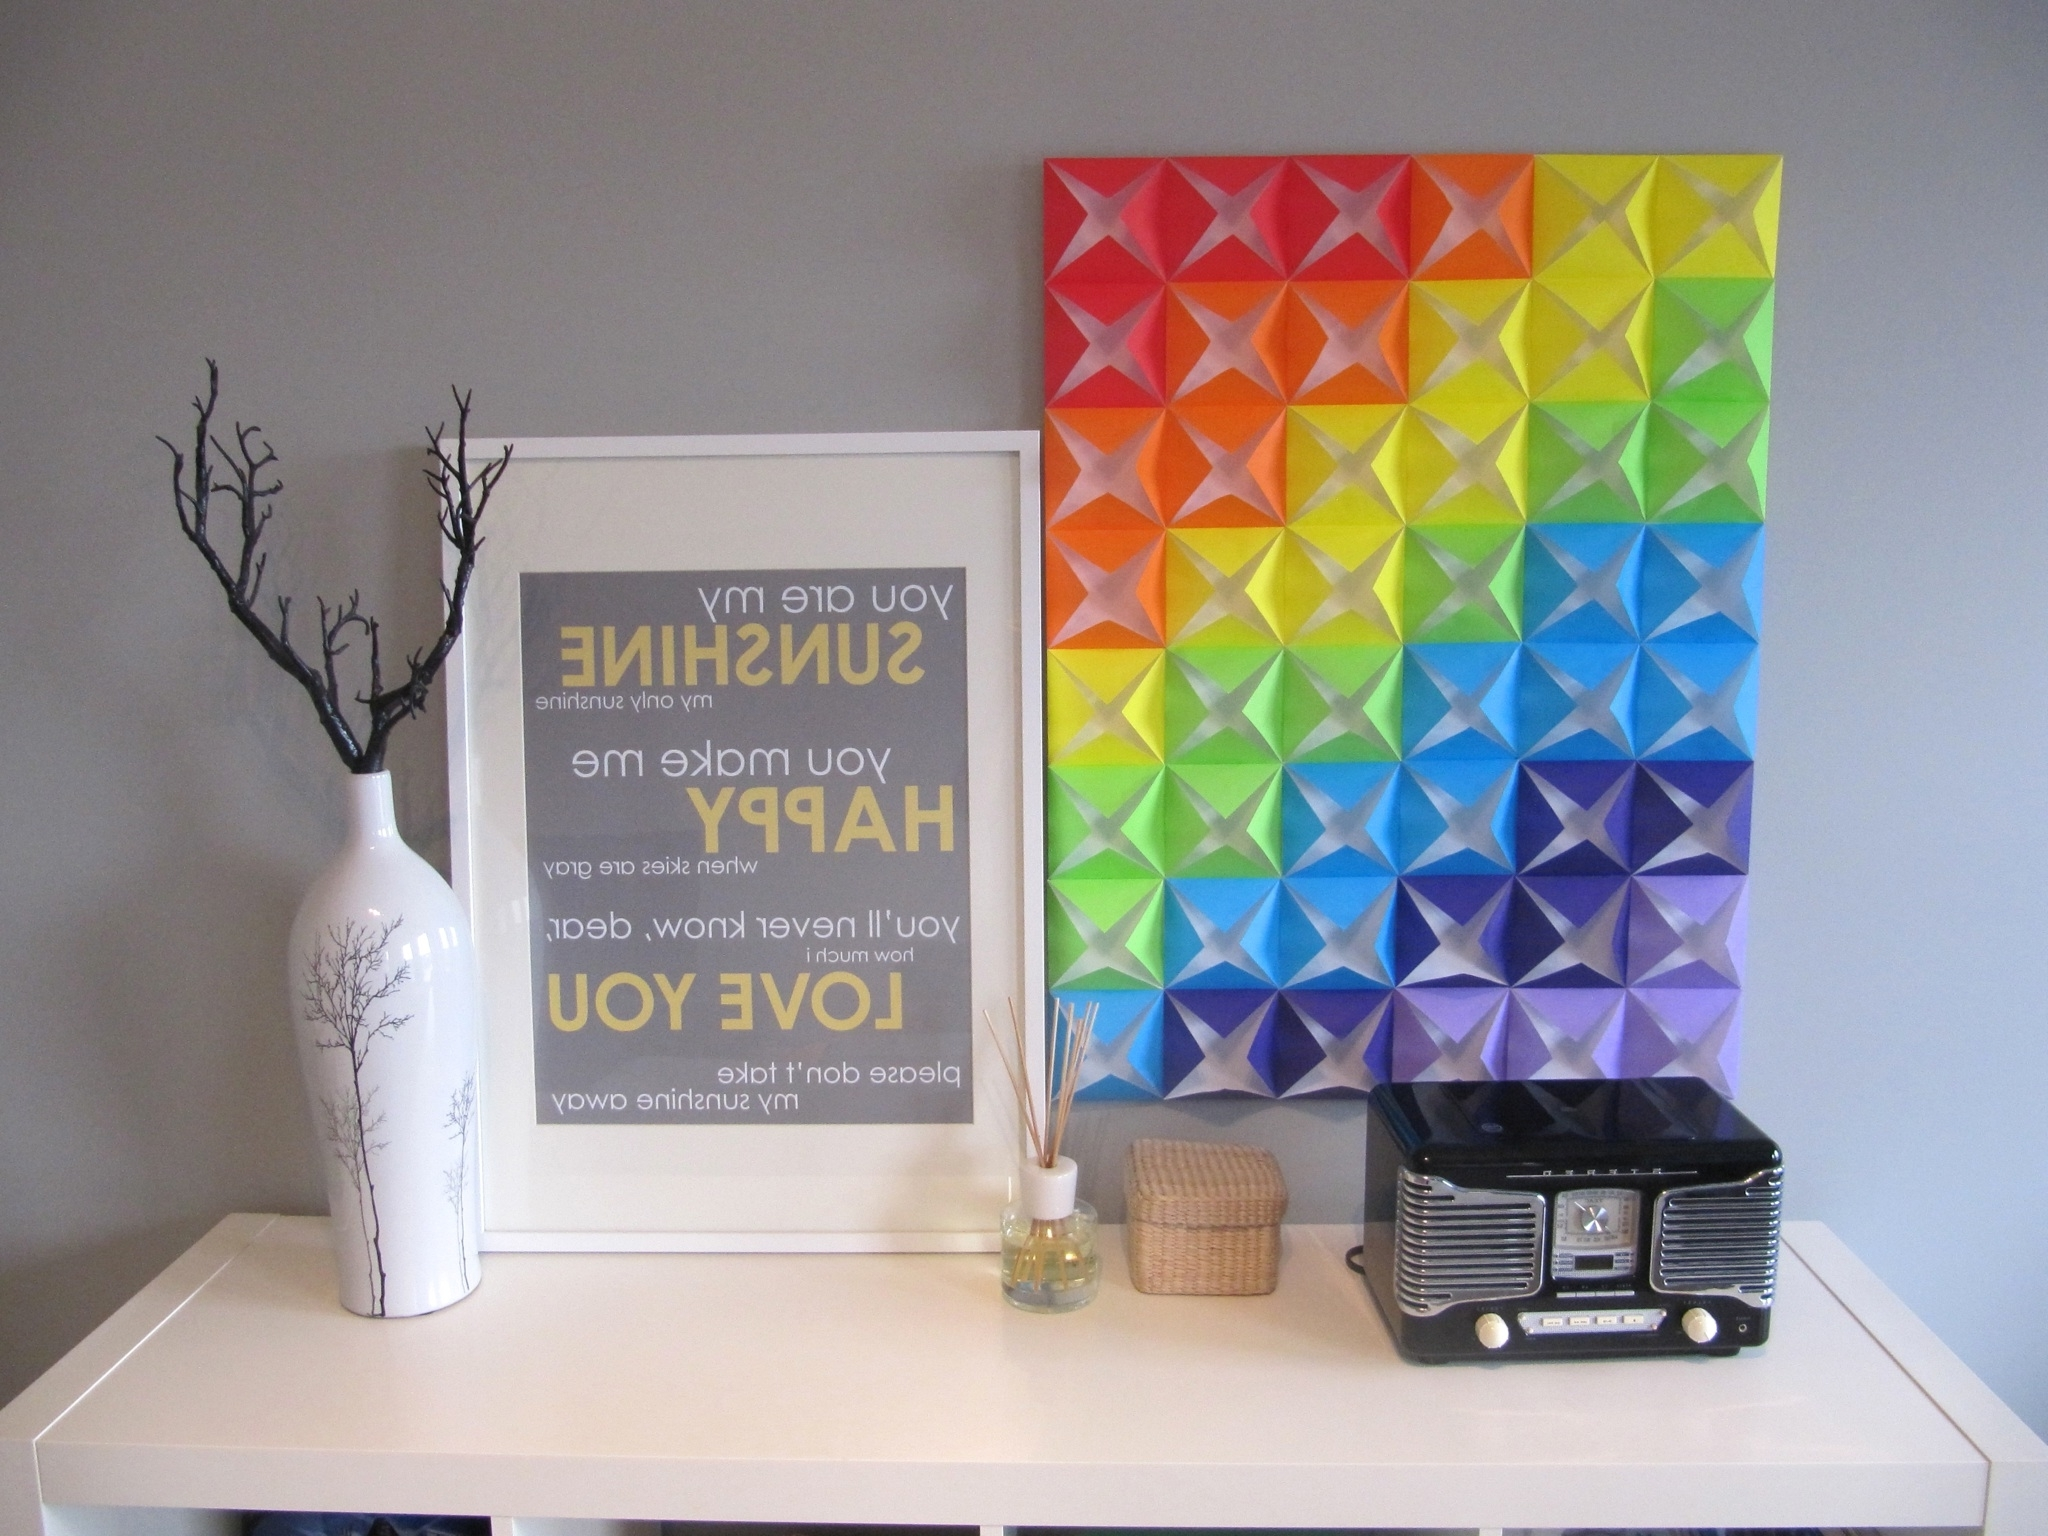 Pinterest Regarding Fashionable Diy Origami Wall Art (View 13 of 15)